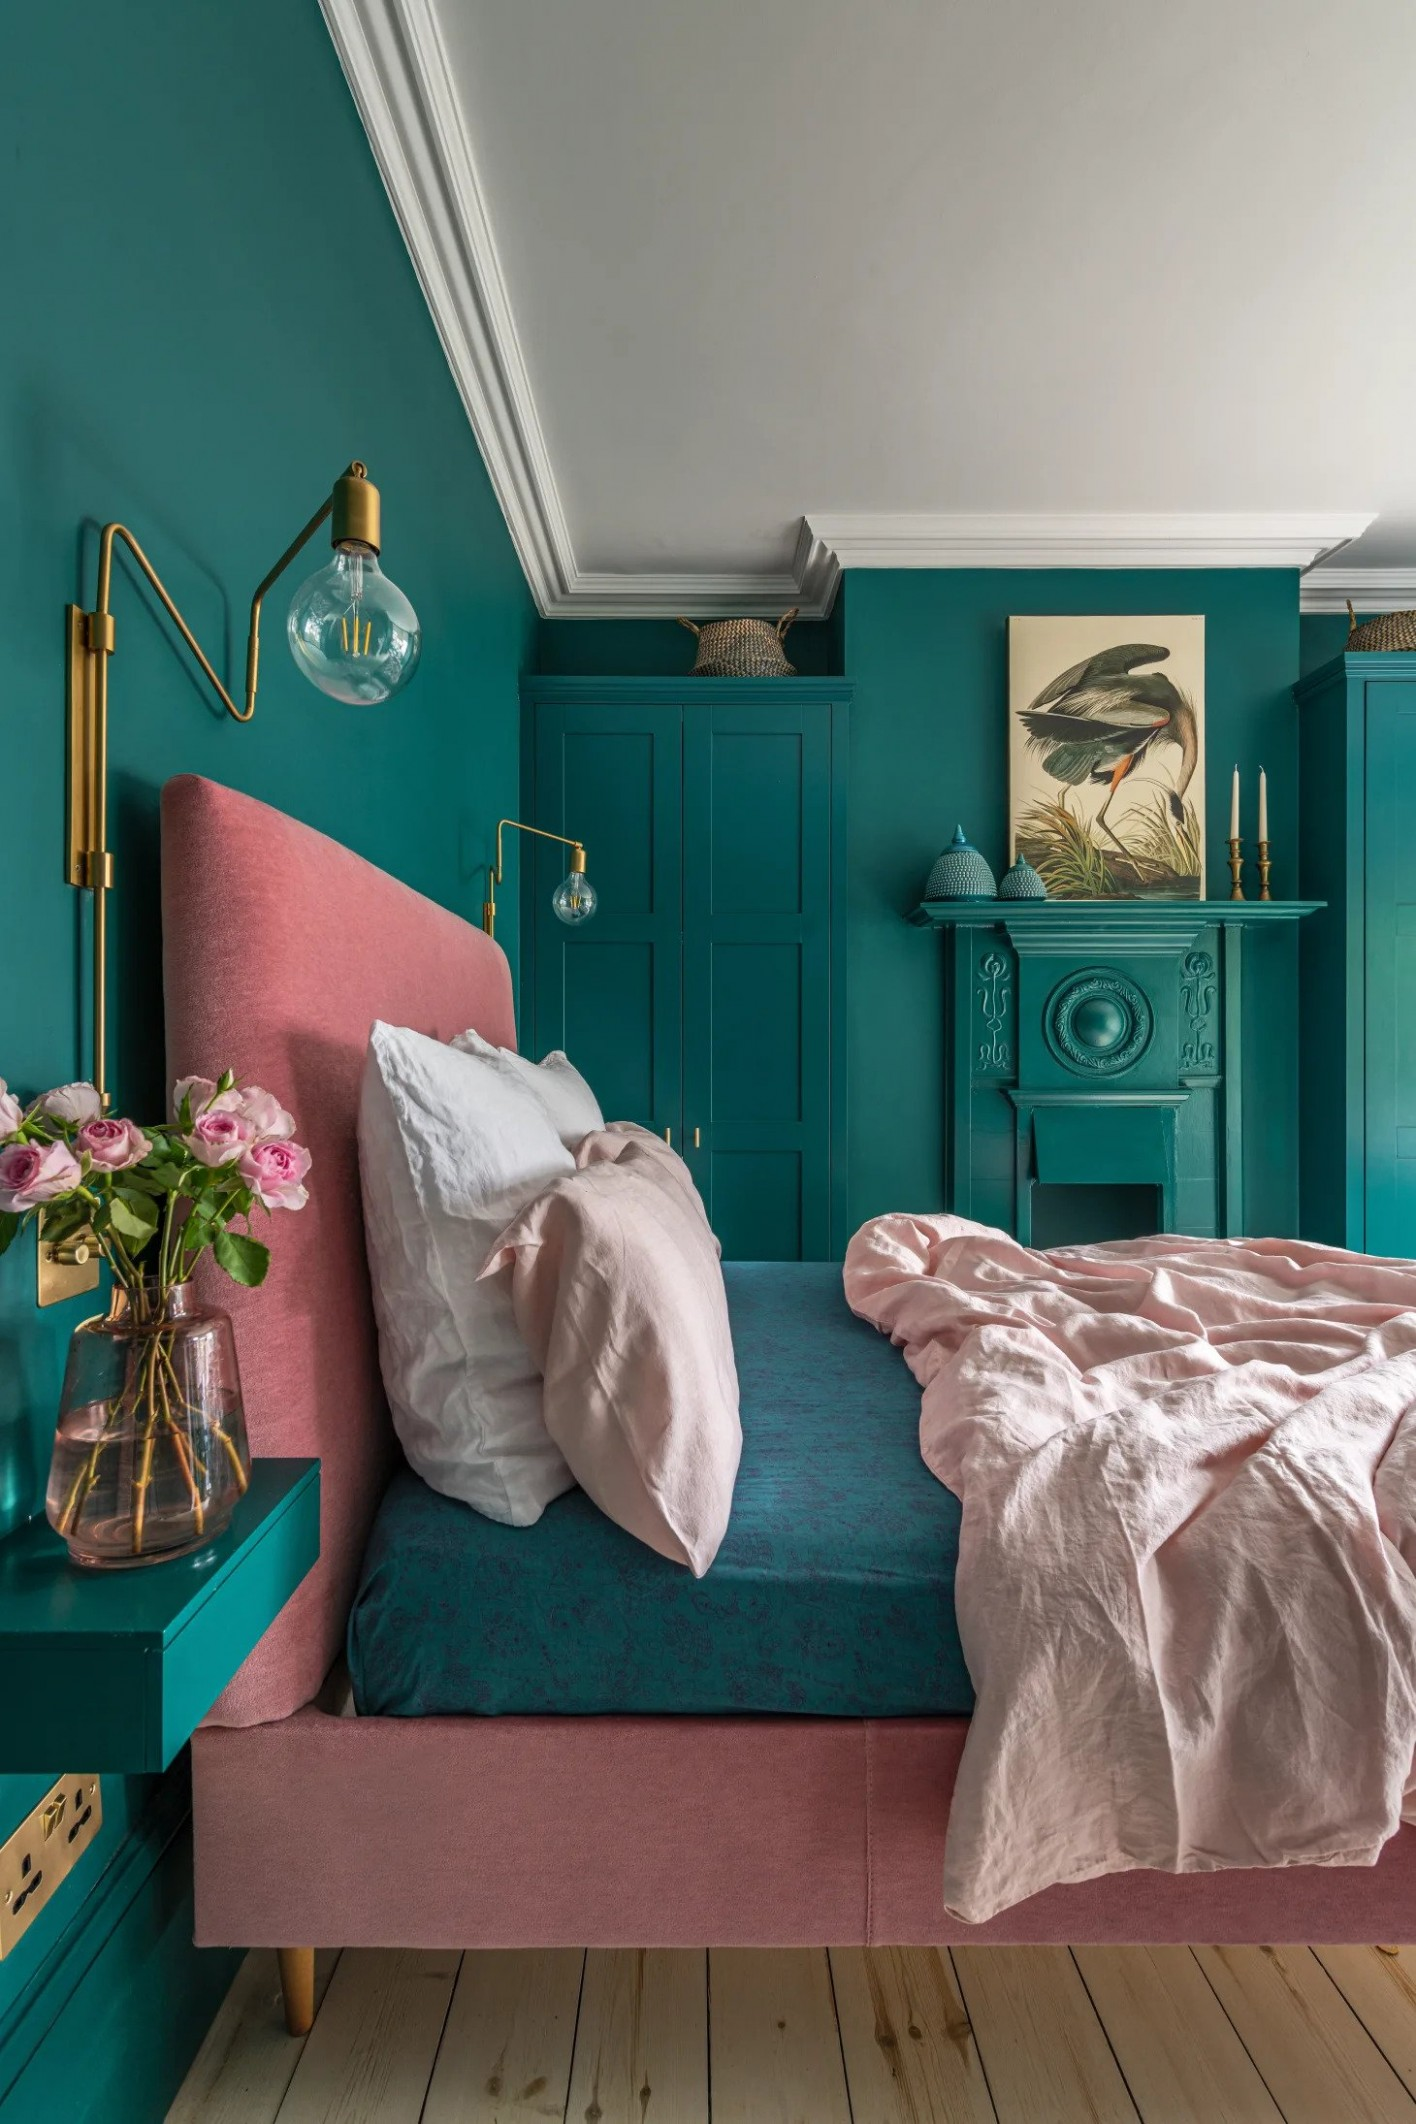 Teal Bedroom Decor: Ideas For Any Bedroom  Decoholic - Bedroom Ideas Teal